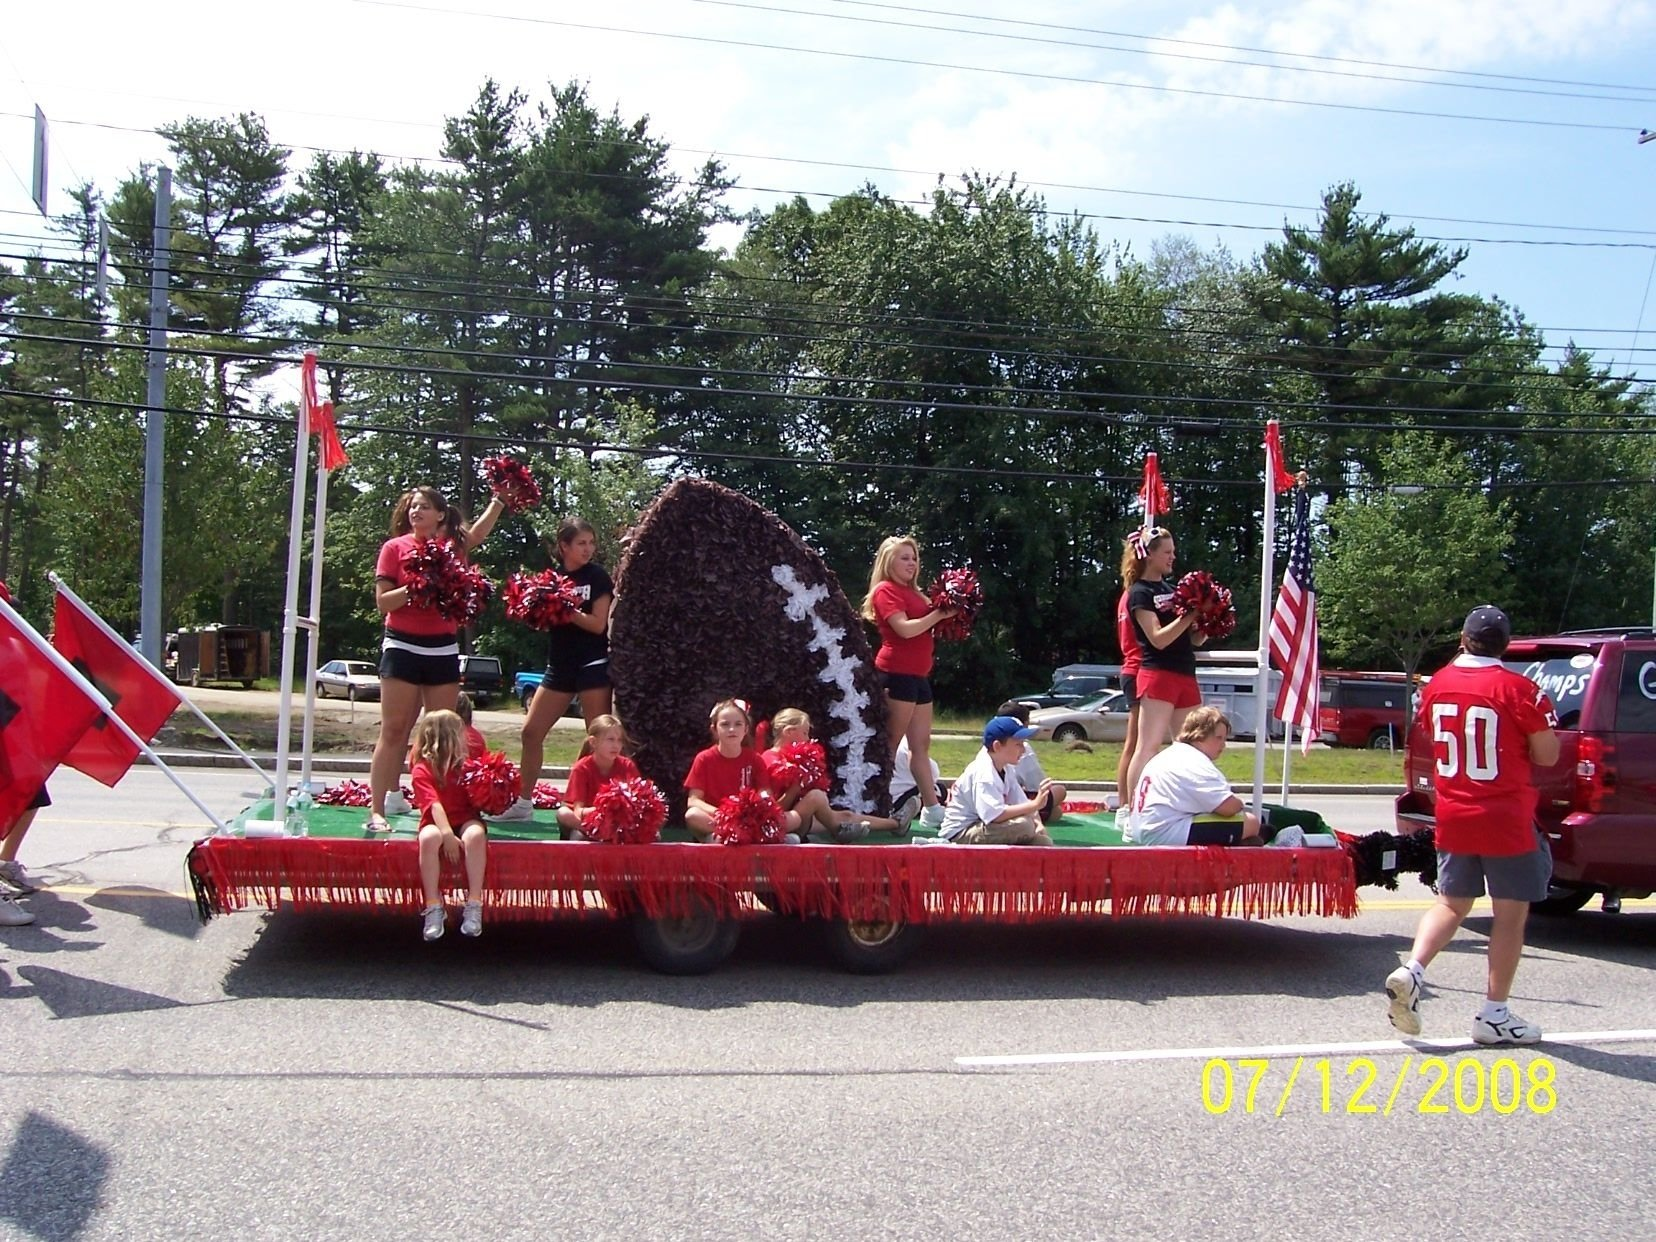 10 Gorgeous High School Homecoming Float Ideas homecoming float ideas wildkat youth cheer organization youth 2021